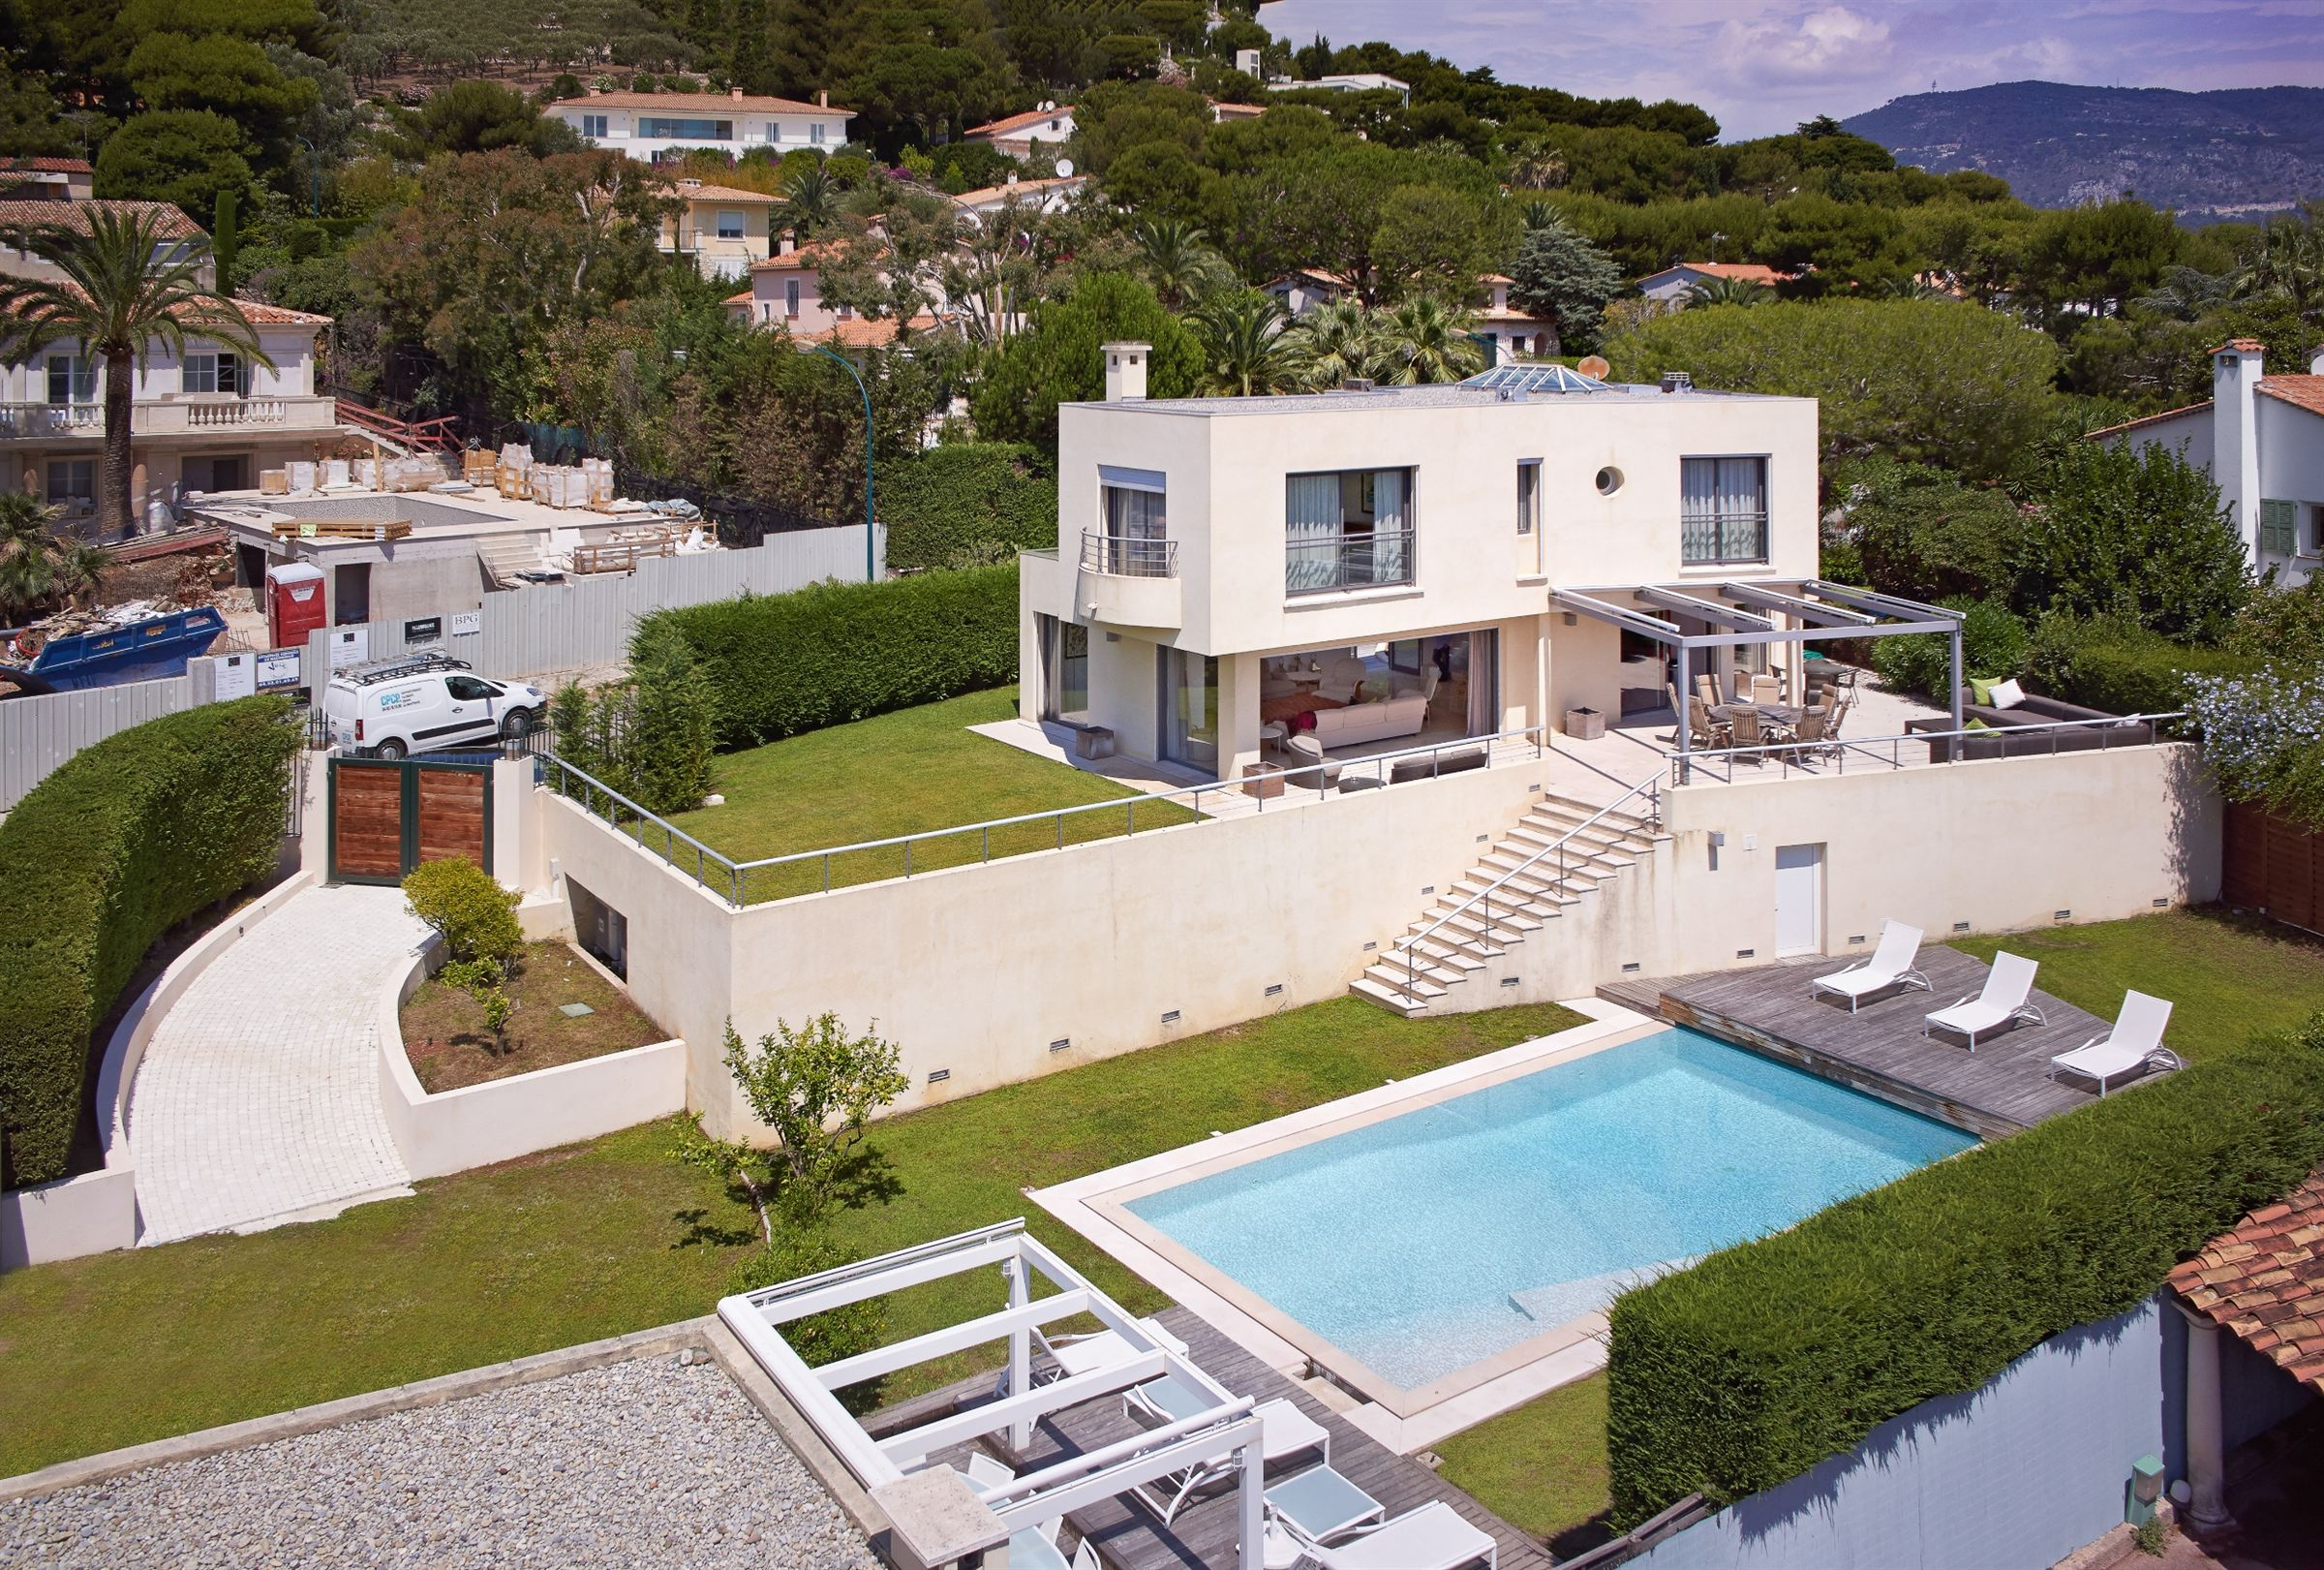 Casa Unifamiliar por un Venta en Contemporary villa close to the 'Grand Hôtel' Other Provence-Alpes-Cote D'Azur, Provincia - Alpes - Costa Azul, 06230 Francia